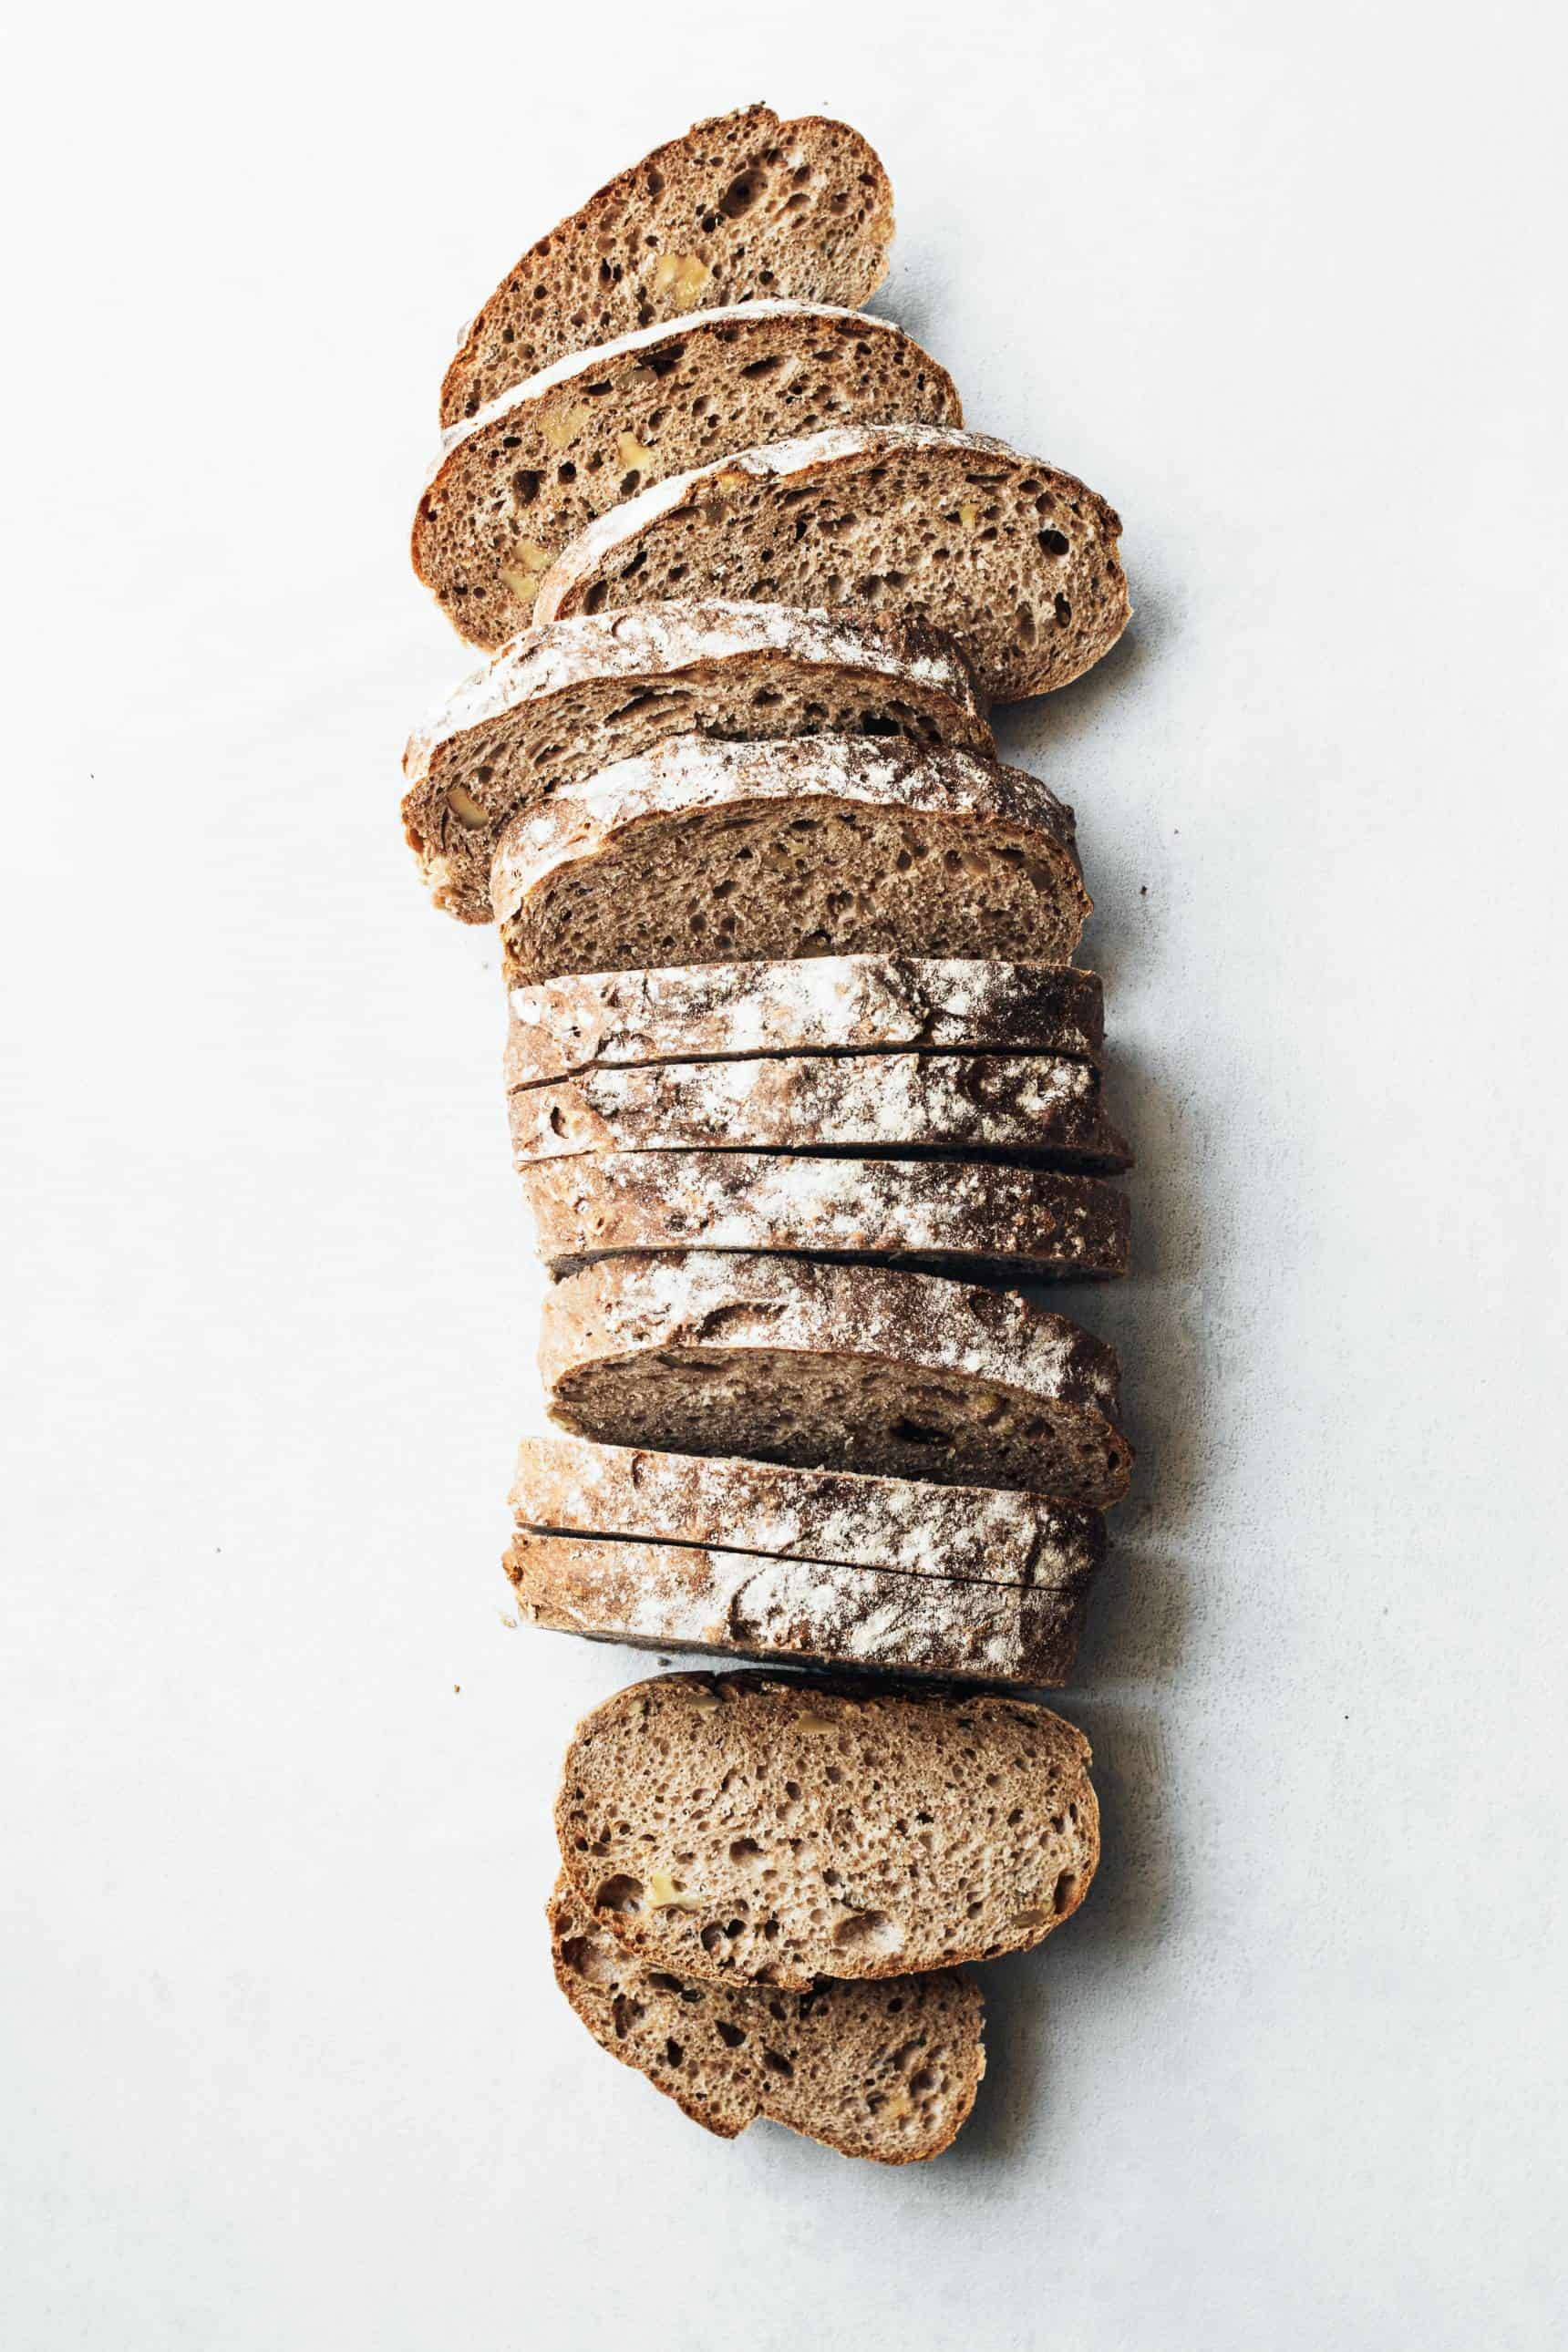 Why Choose Wholemeal Bread Over White Bread?